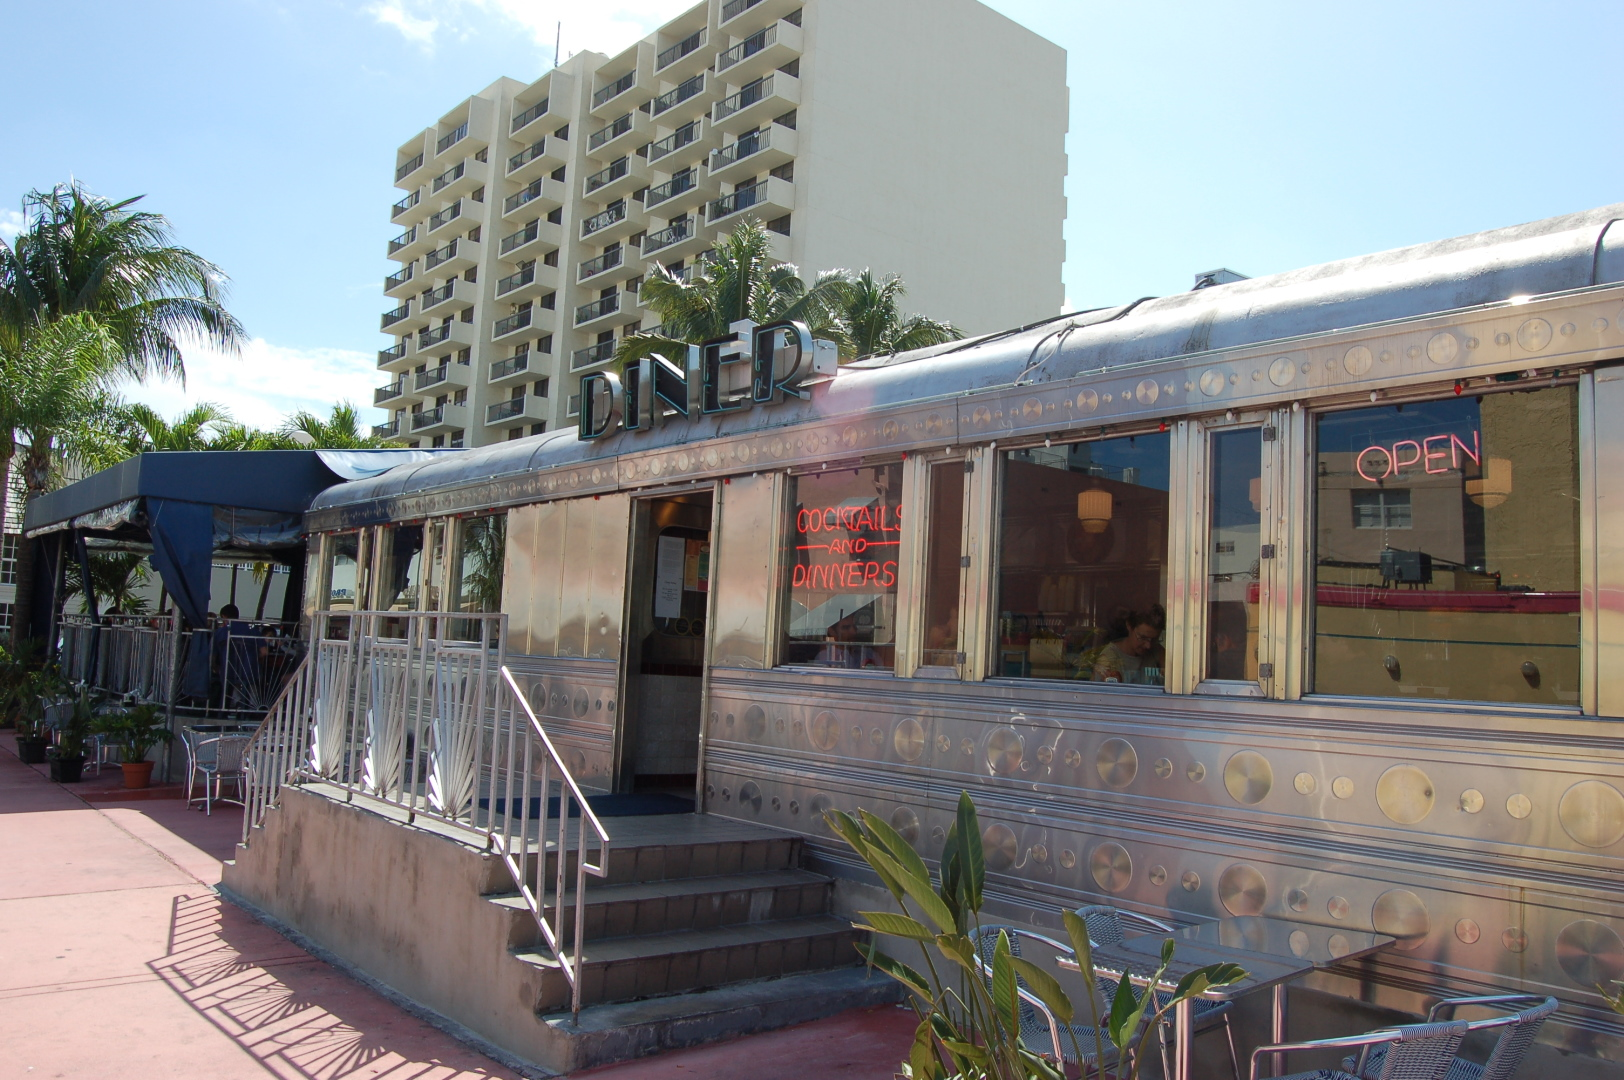 Miami Beach 14 St. Diner